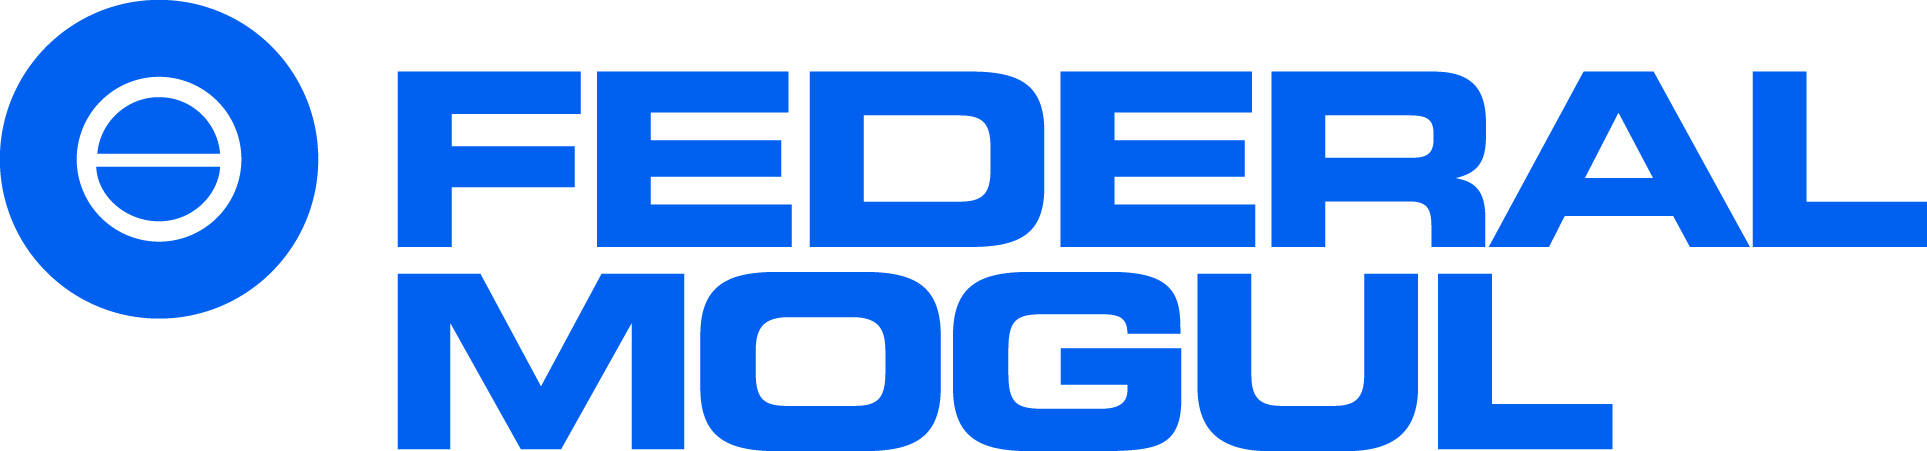 GARAGE VINCENT - logo Federal Mogul